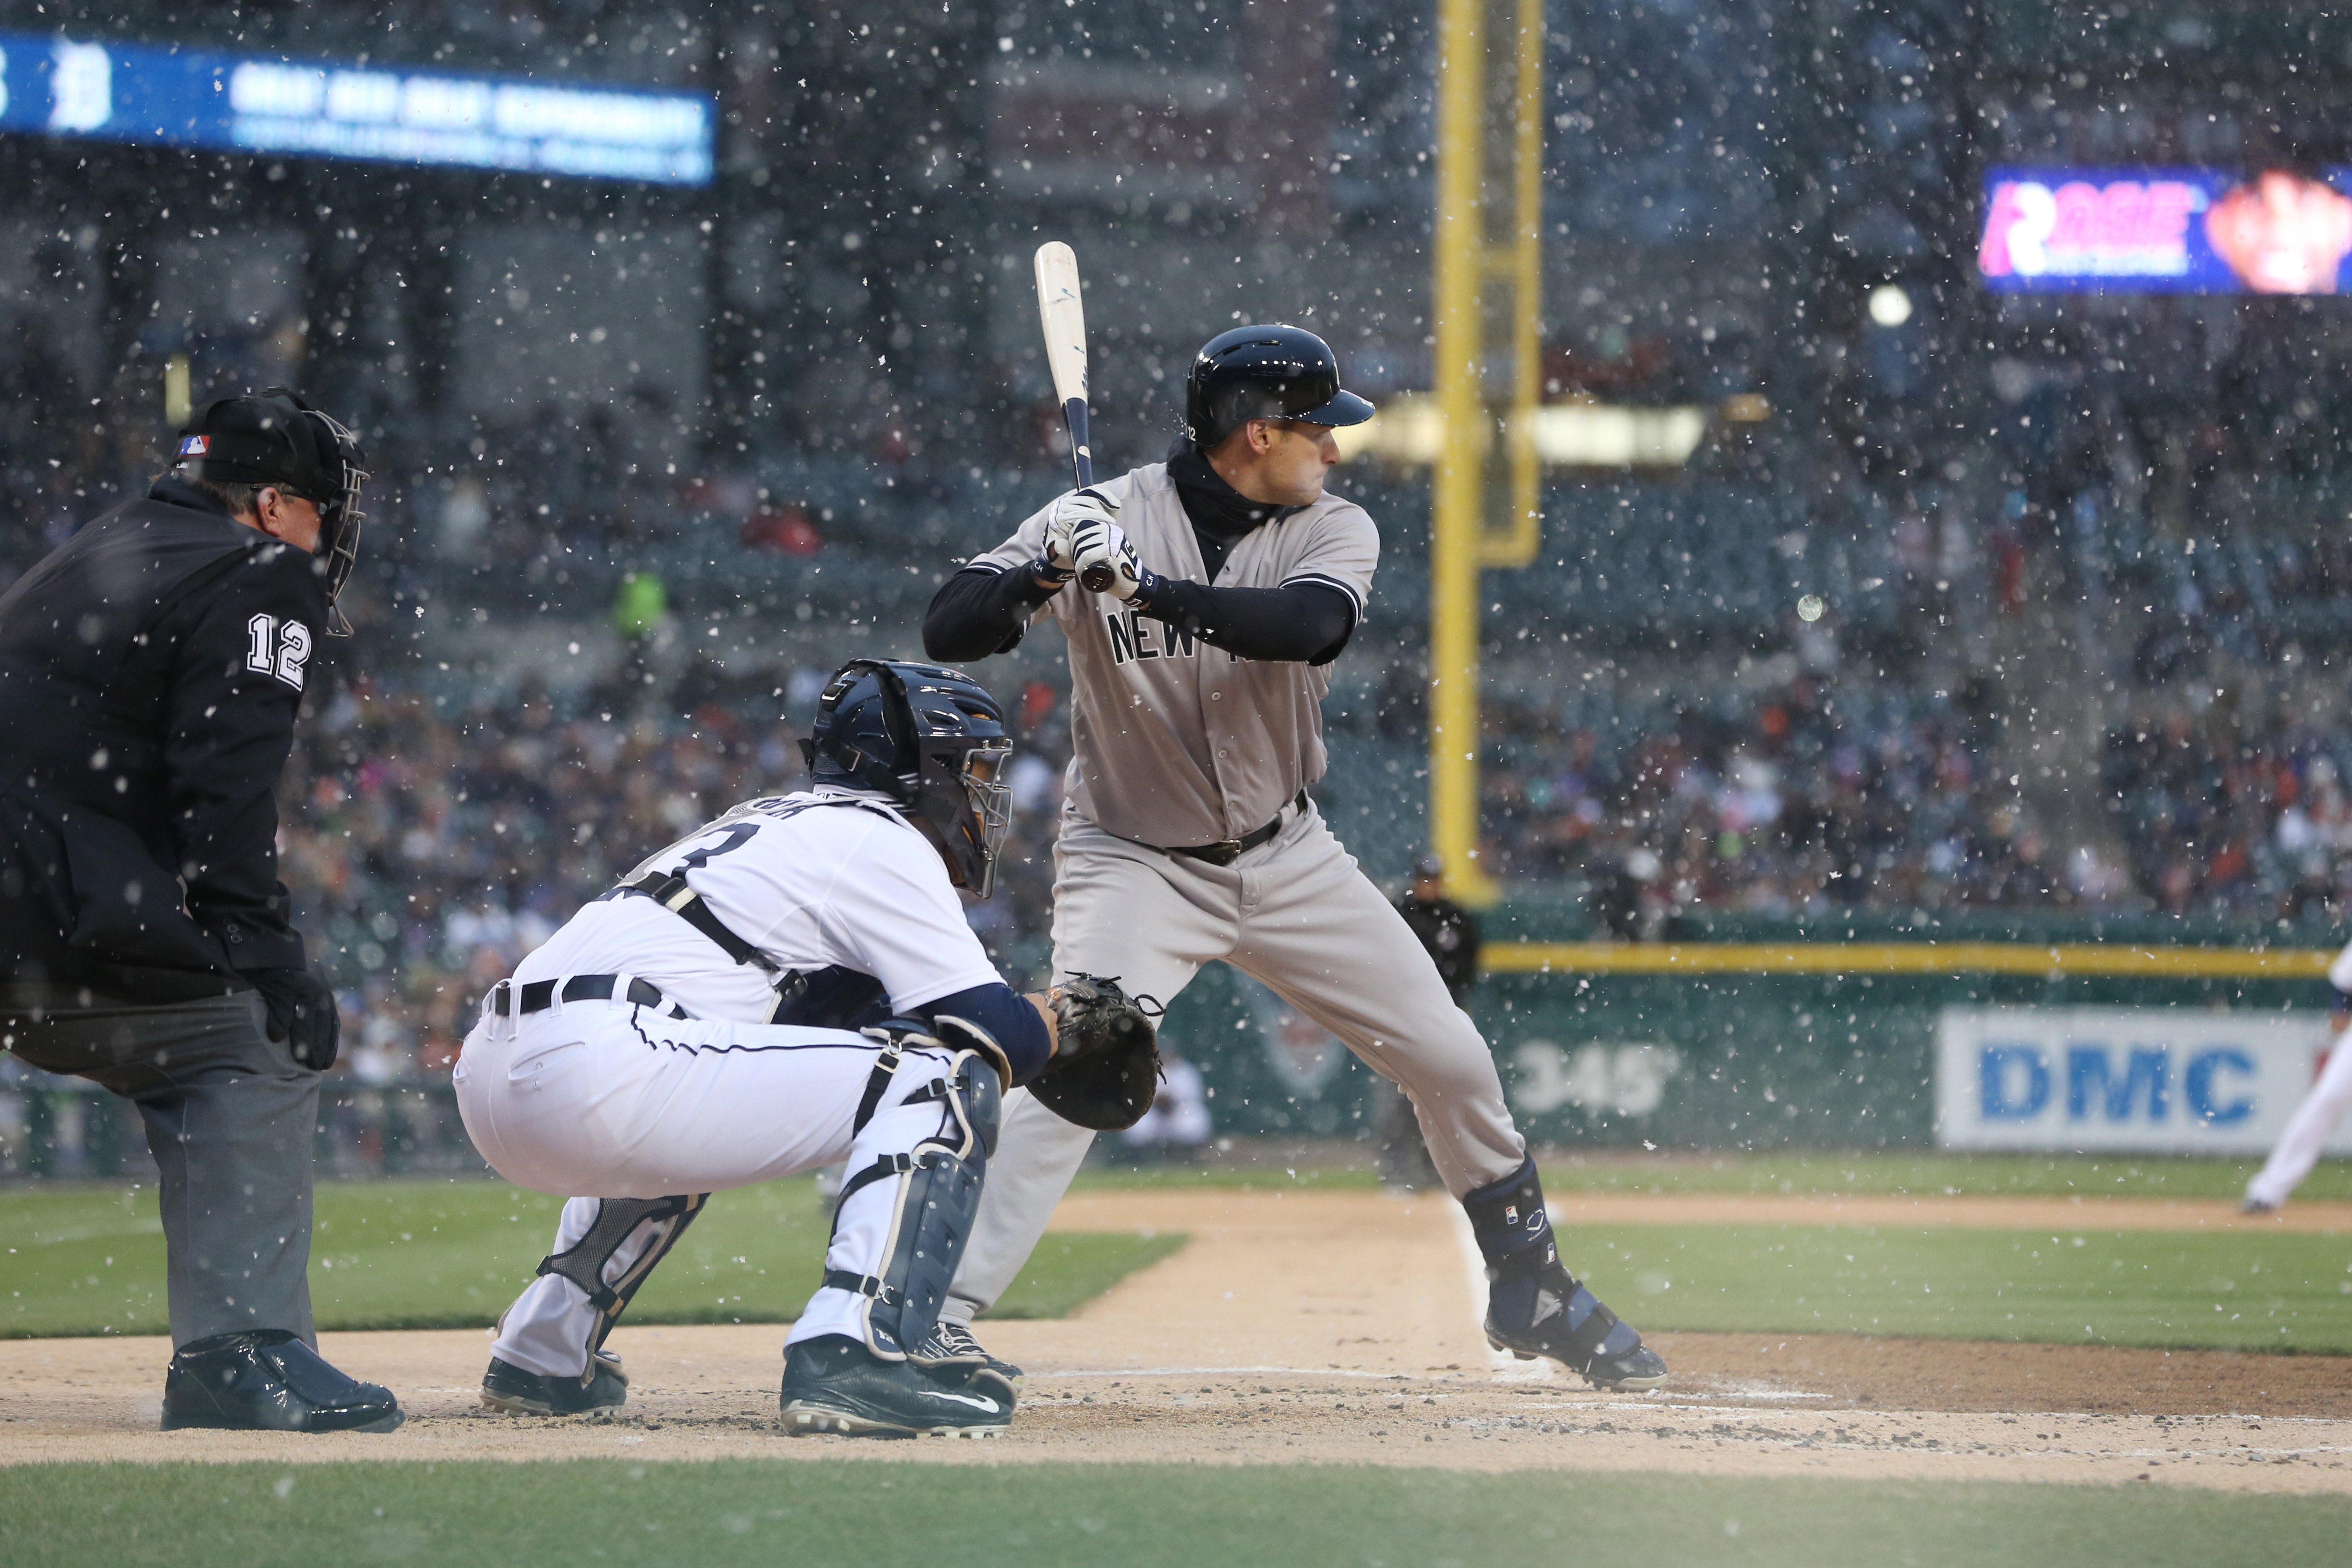 New York Yankees' Chase Headley bats as snow falls during the first inning of a baseball game against the Detroit Tigers, Wednesday, April 22, 2015, in Detroit. (AP Photo/Carlos Osorio)